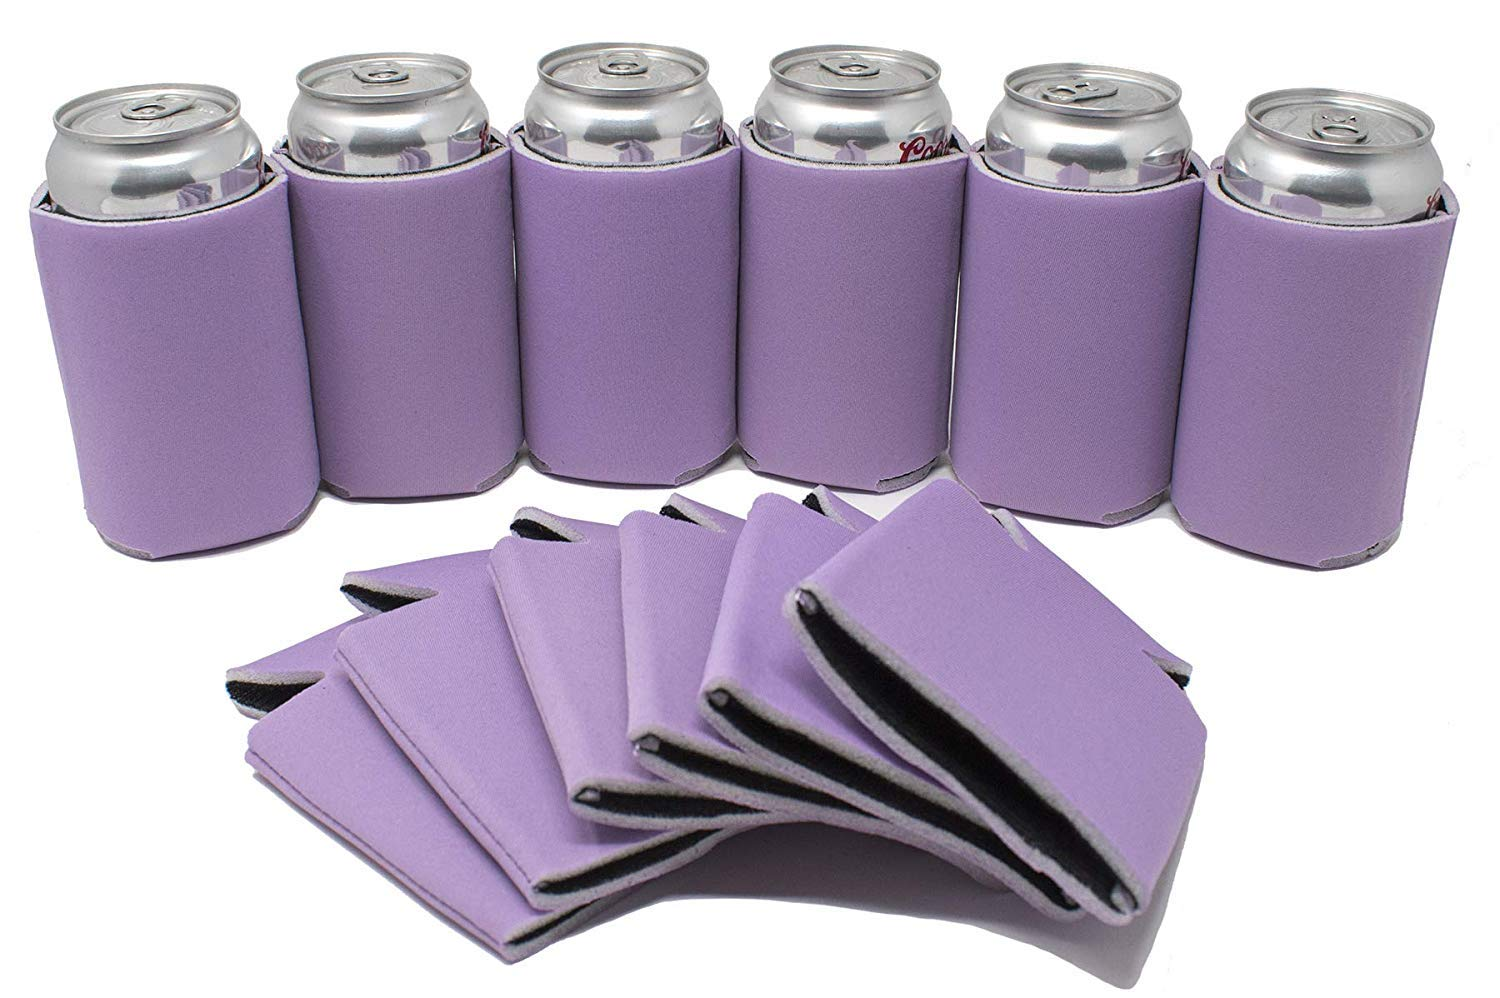 TahoeBay 12 Blank Beer Can Coolers, Plain Bulk Collapsible Soda Cover Coolies, DIY Personalized Sublimation Sleeves for Weddings, Bachelorette Parties, Funny HTV Party Favors (Lavender, 12)